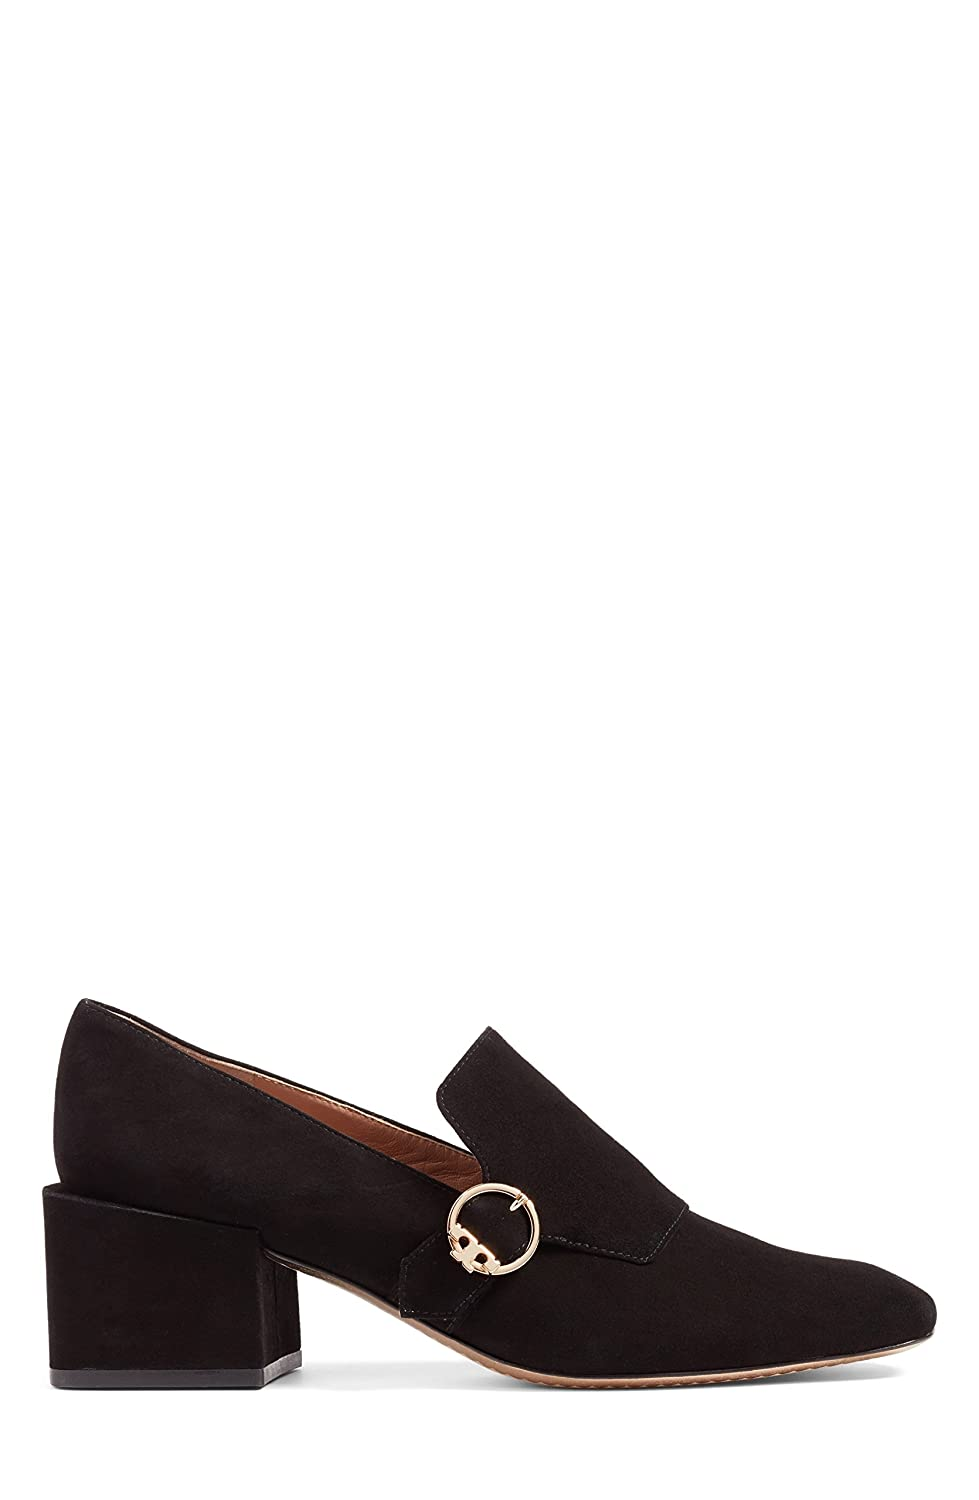 4652cb09fd2 Tory Burch Womens Tess Loafer Leather Square Toe Loafers Black Size 6.0   Amazon.ca  Shoes   Handbags